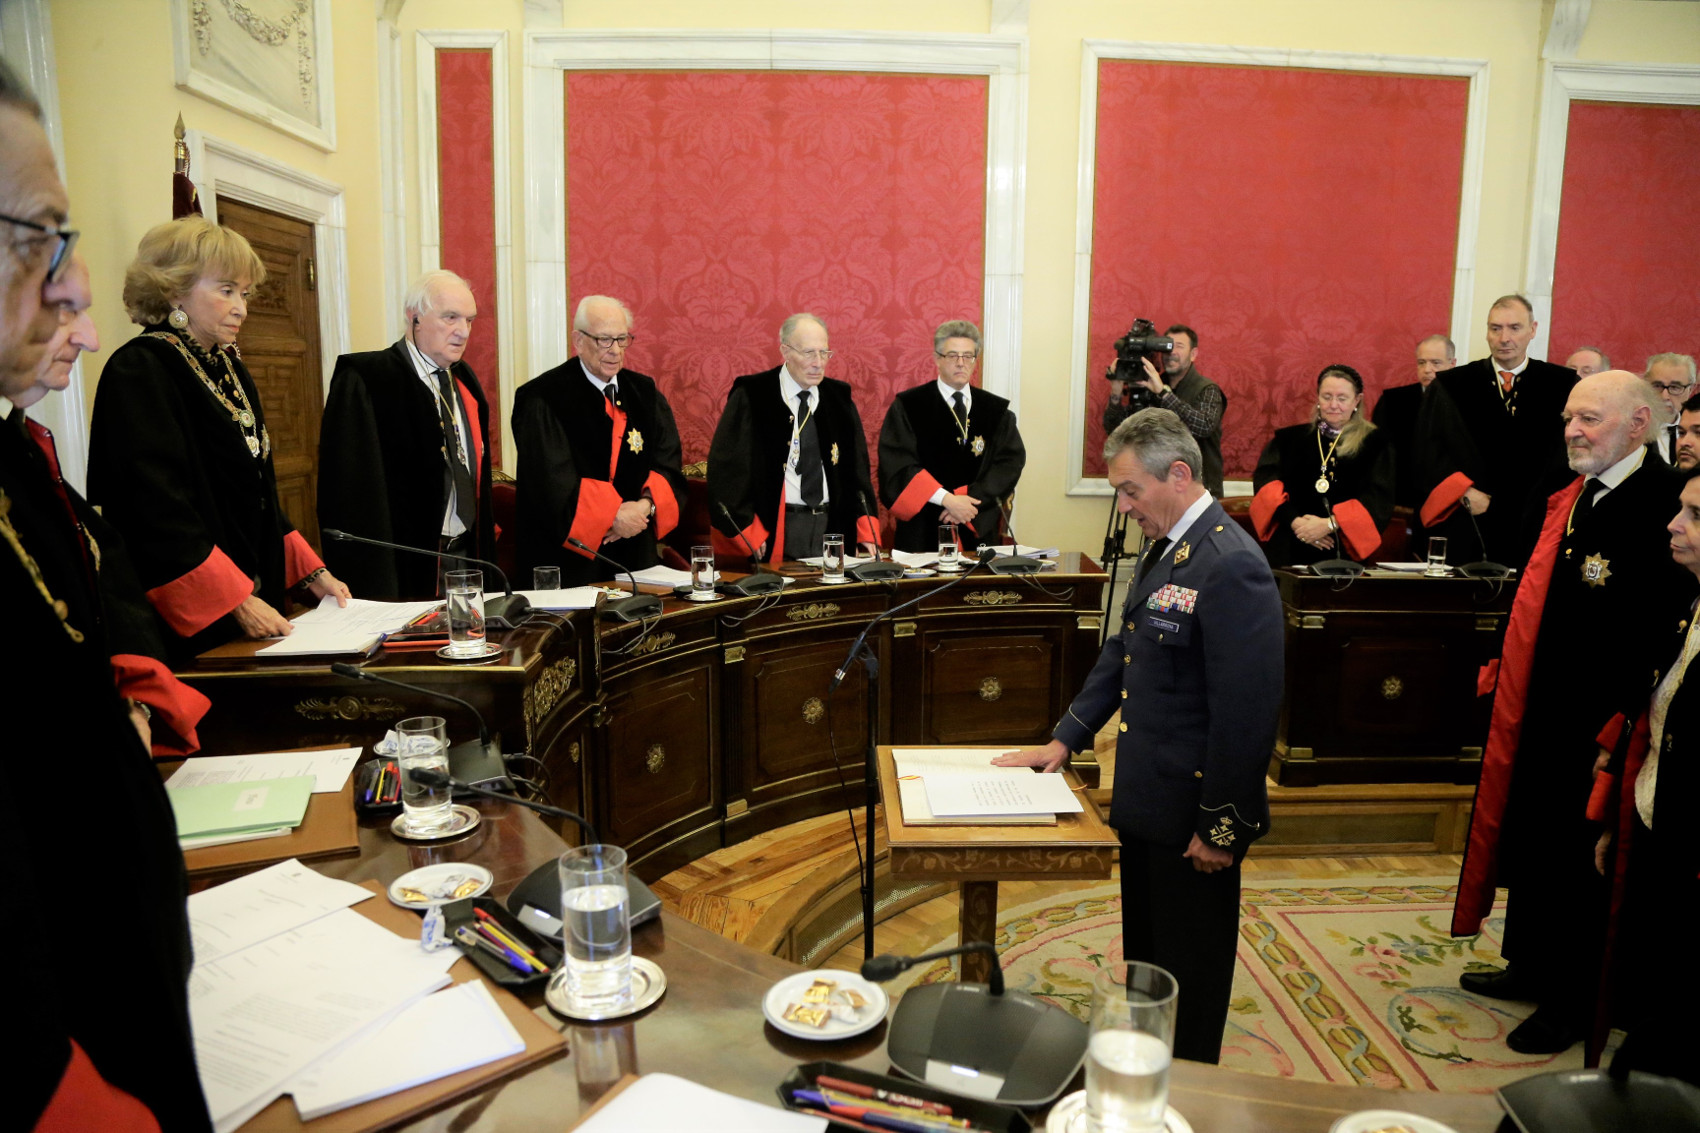 The Chief of The Defence Staff took office as ex officio Member of the Council of State